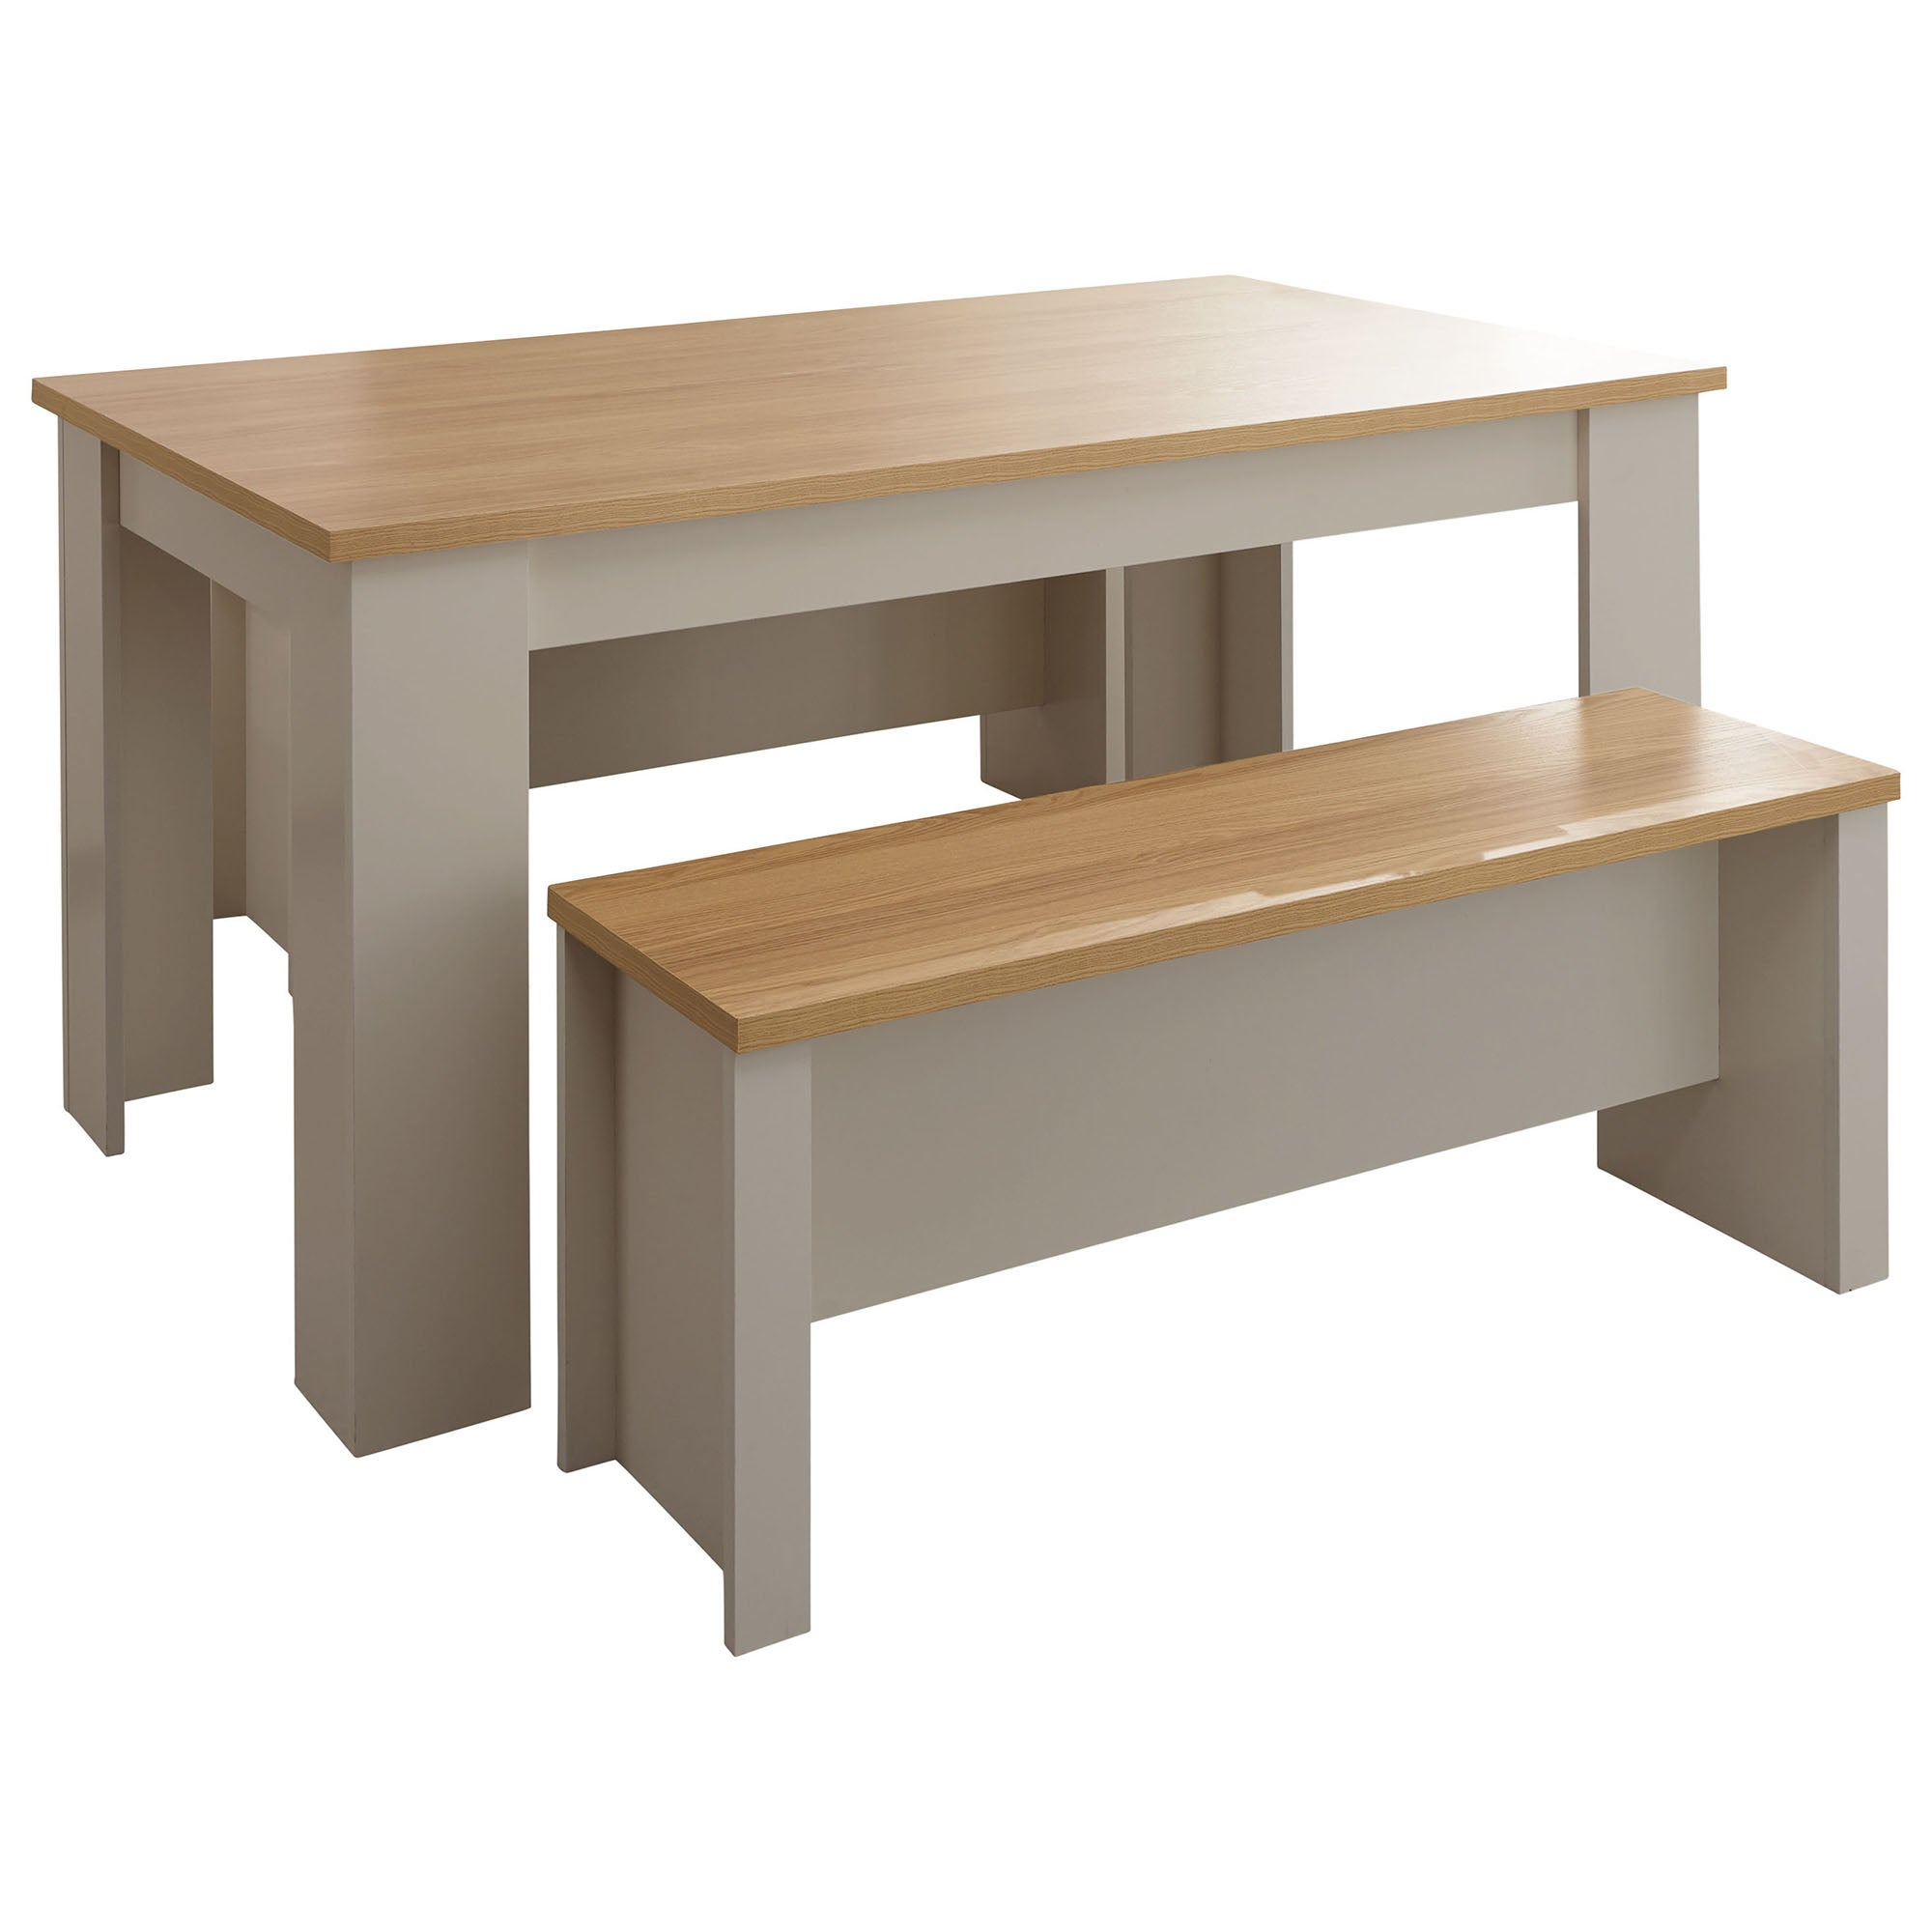 Lancaster 150cm Dining Table and Bench Set Grey and Brown